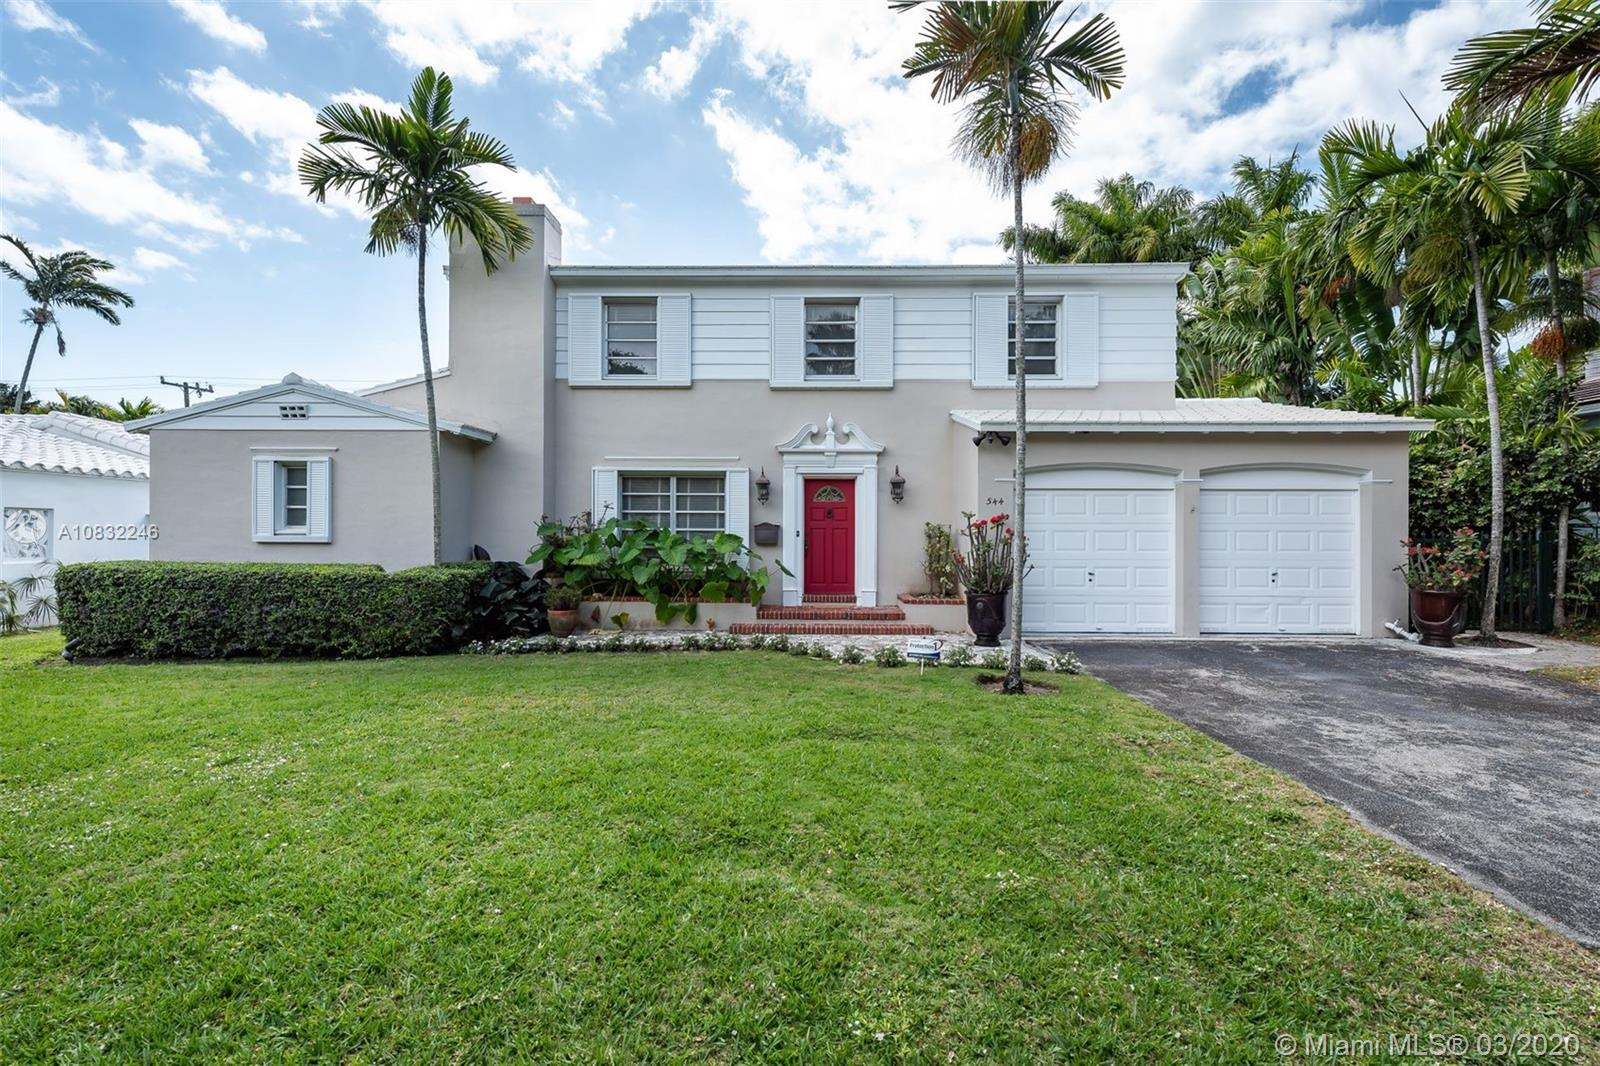 544 NE 55th St, Miami, Florida 33137, 3 Bedrooms Bedrooms, ,3 BathroomsBathrooms,Residential,For Sale,544 NE 55th St,A10832246